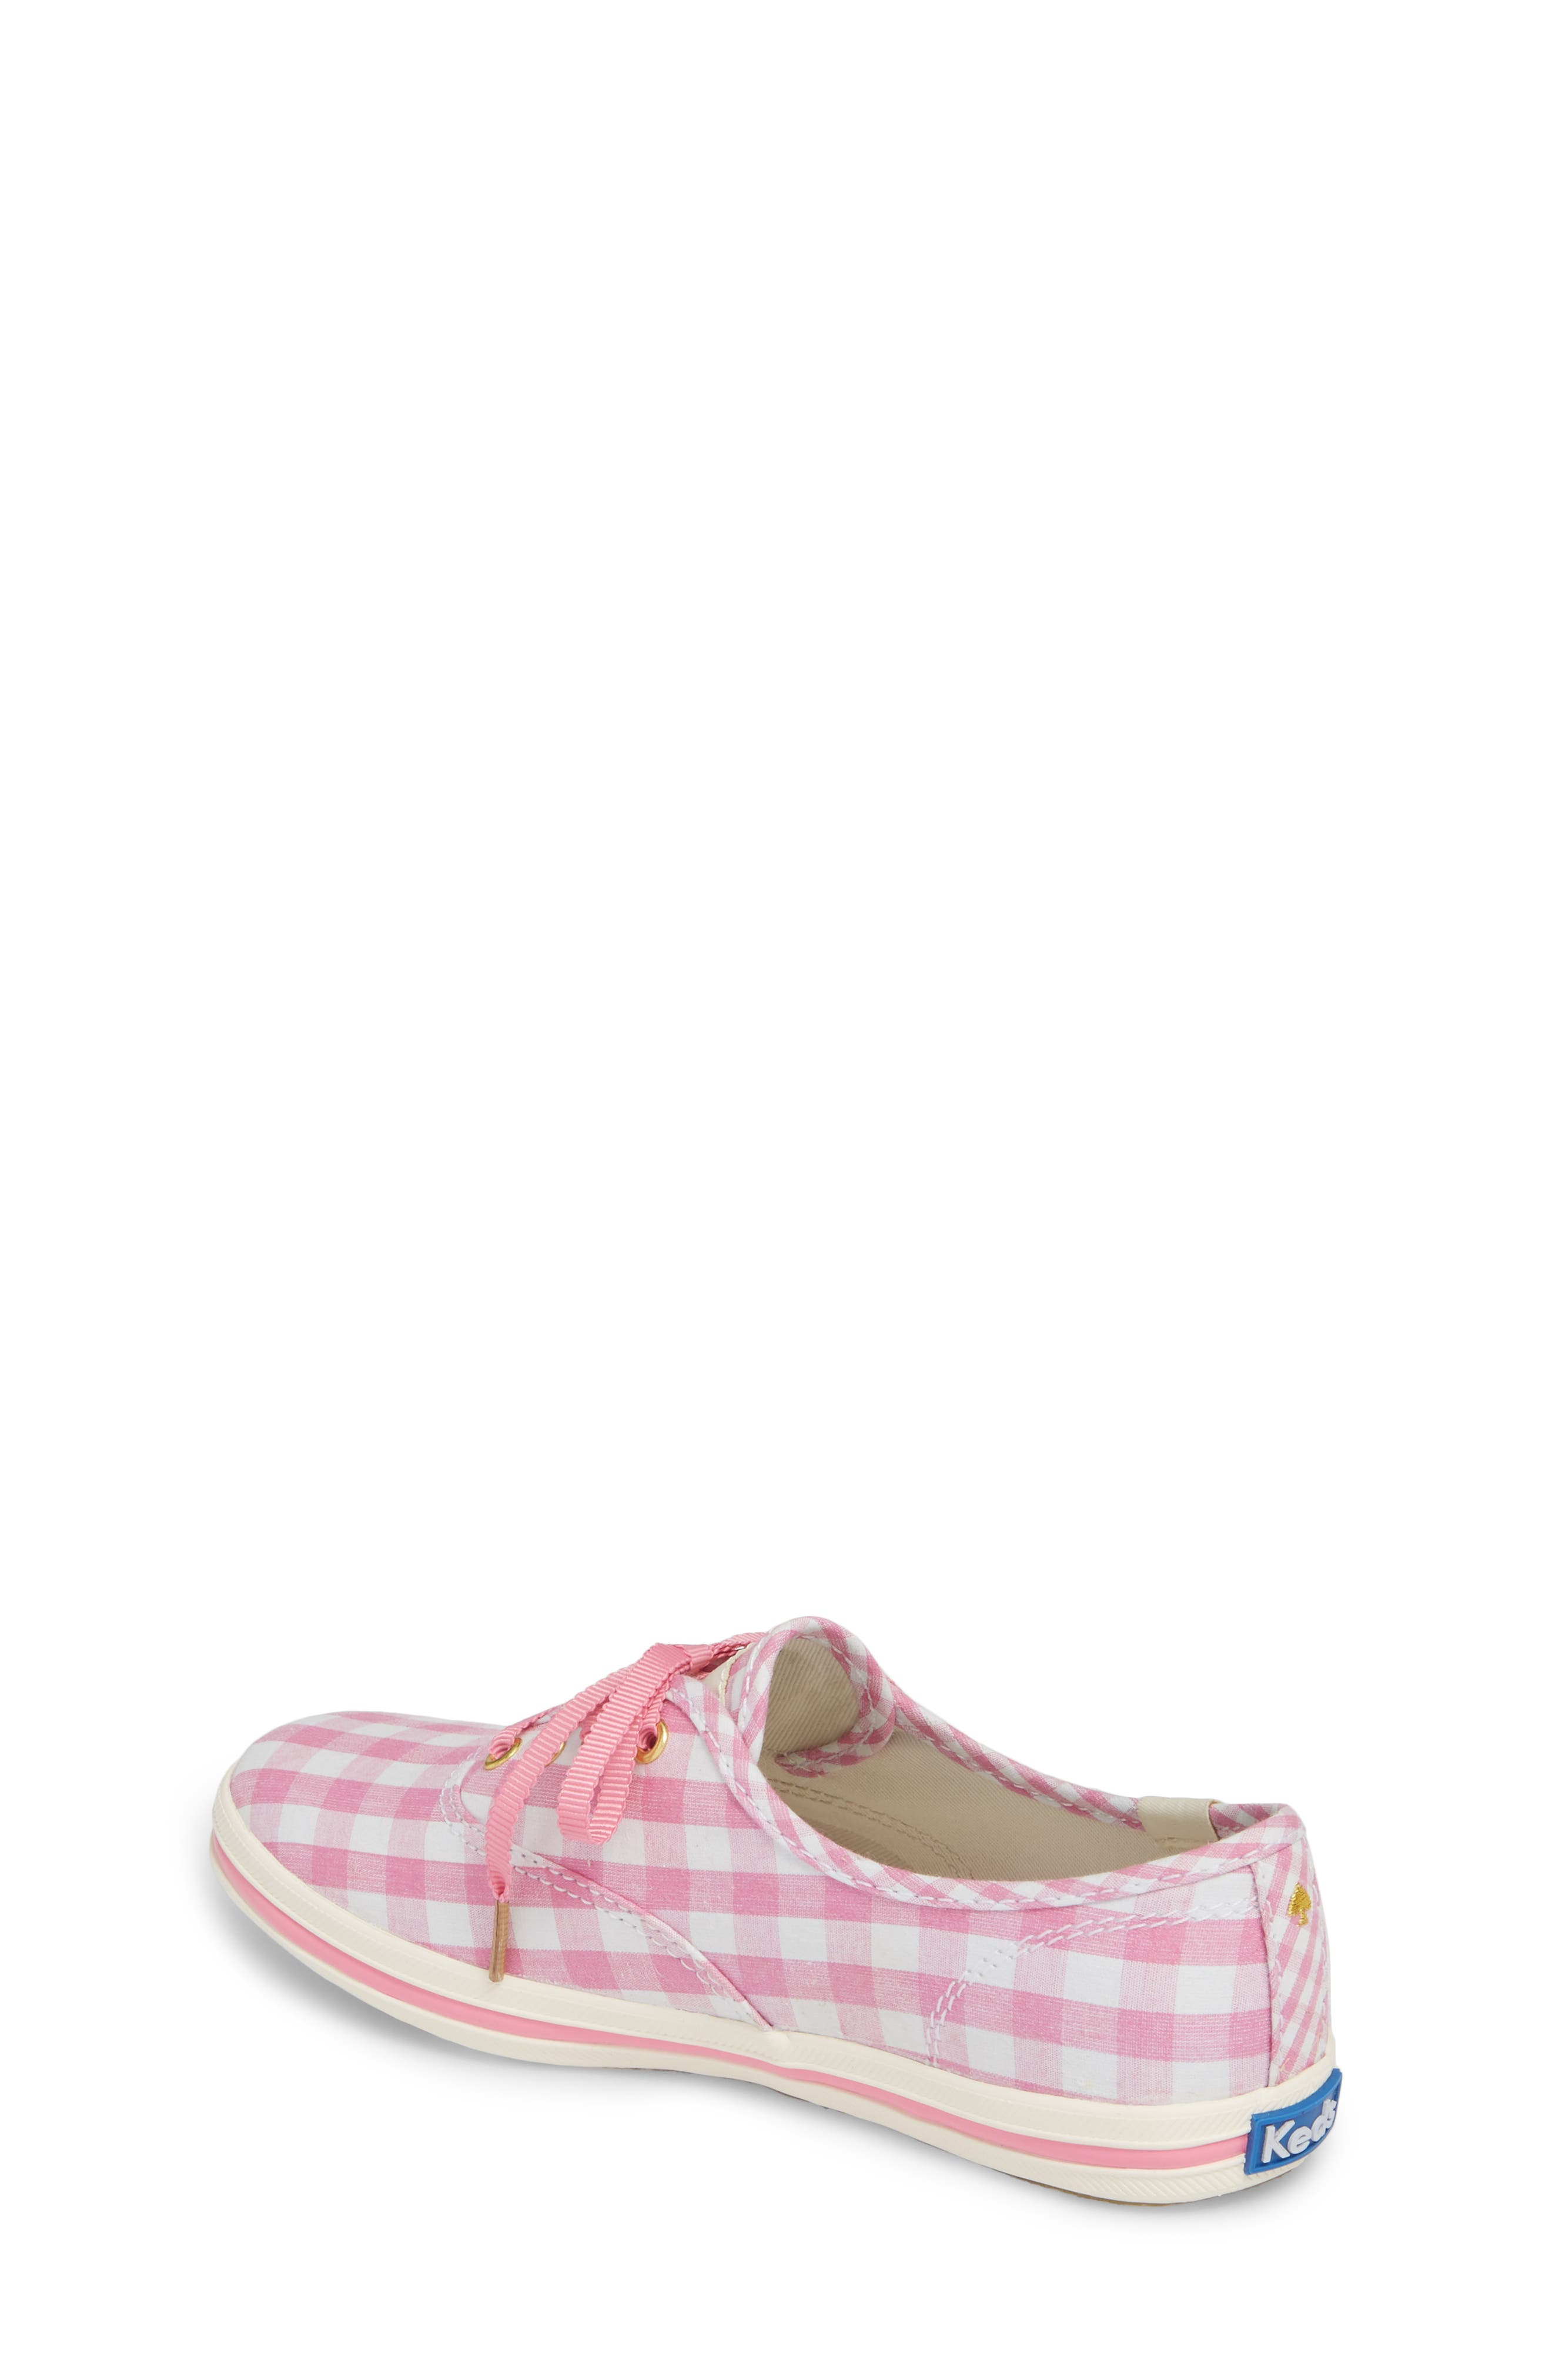 x kate spade new york champion gingham lace-up shoe,                             Alternate thumbnail 2, color,                             Pink Gingham